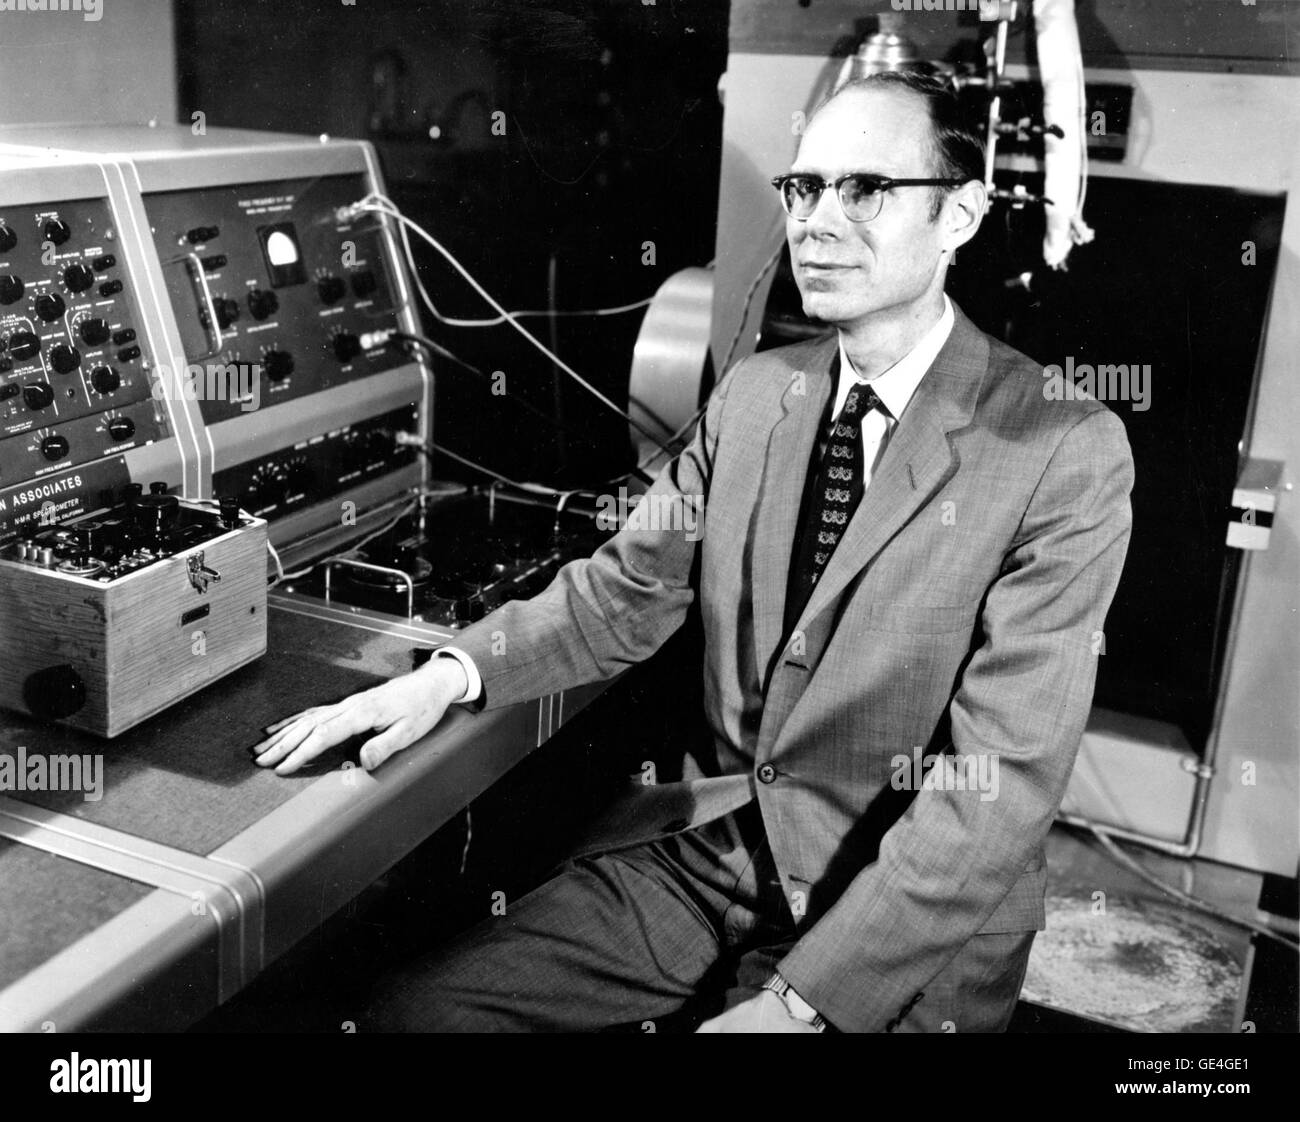 John Robinson Pierce, the former director of research at AT&T Bell Telephone Laboratories. Born in Des Moines, - Stock Image